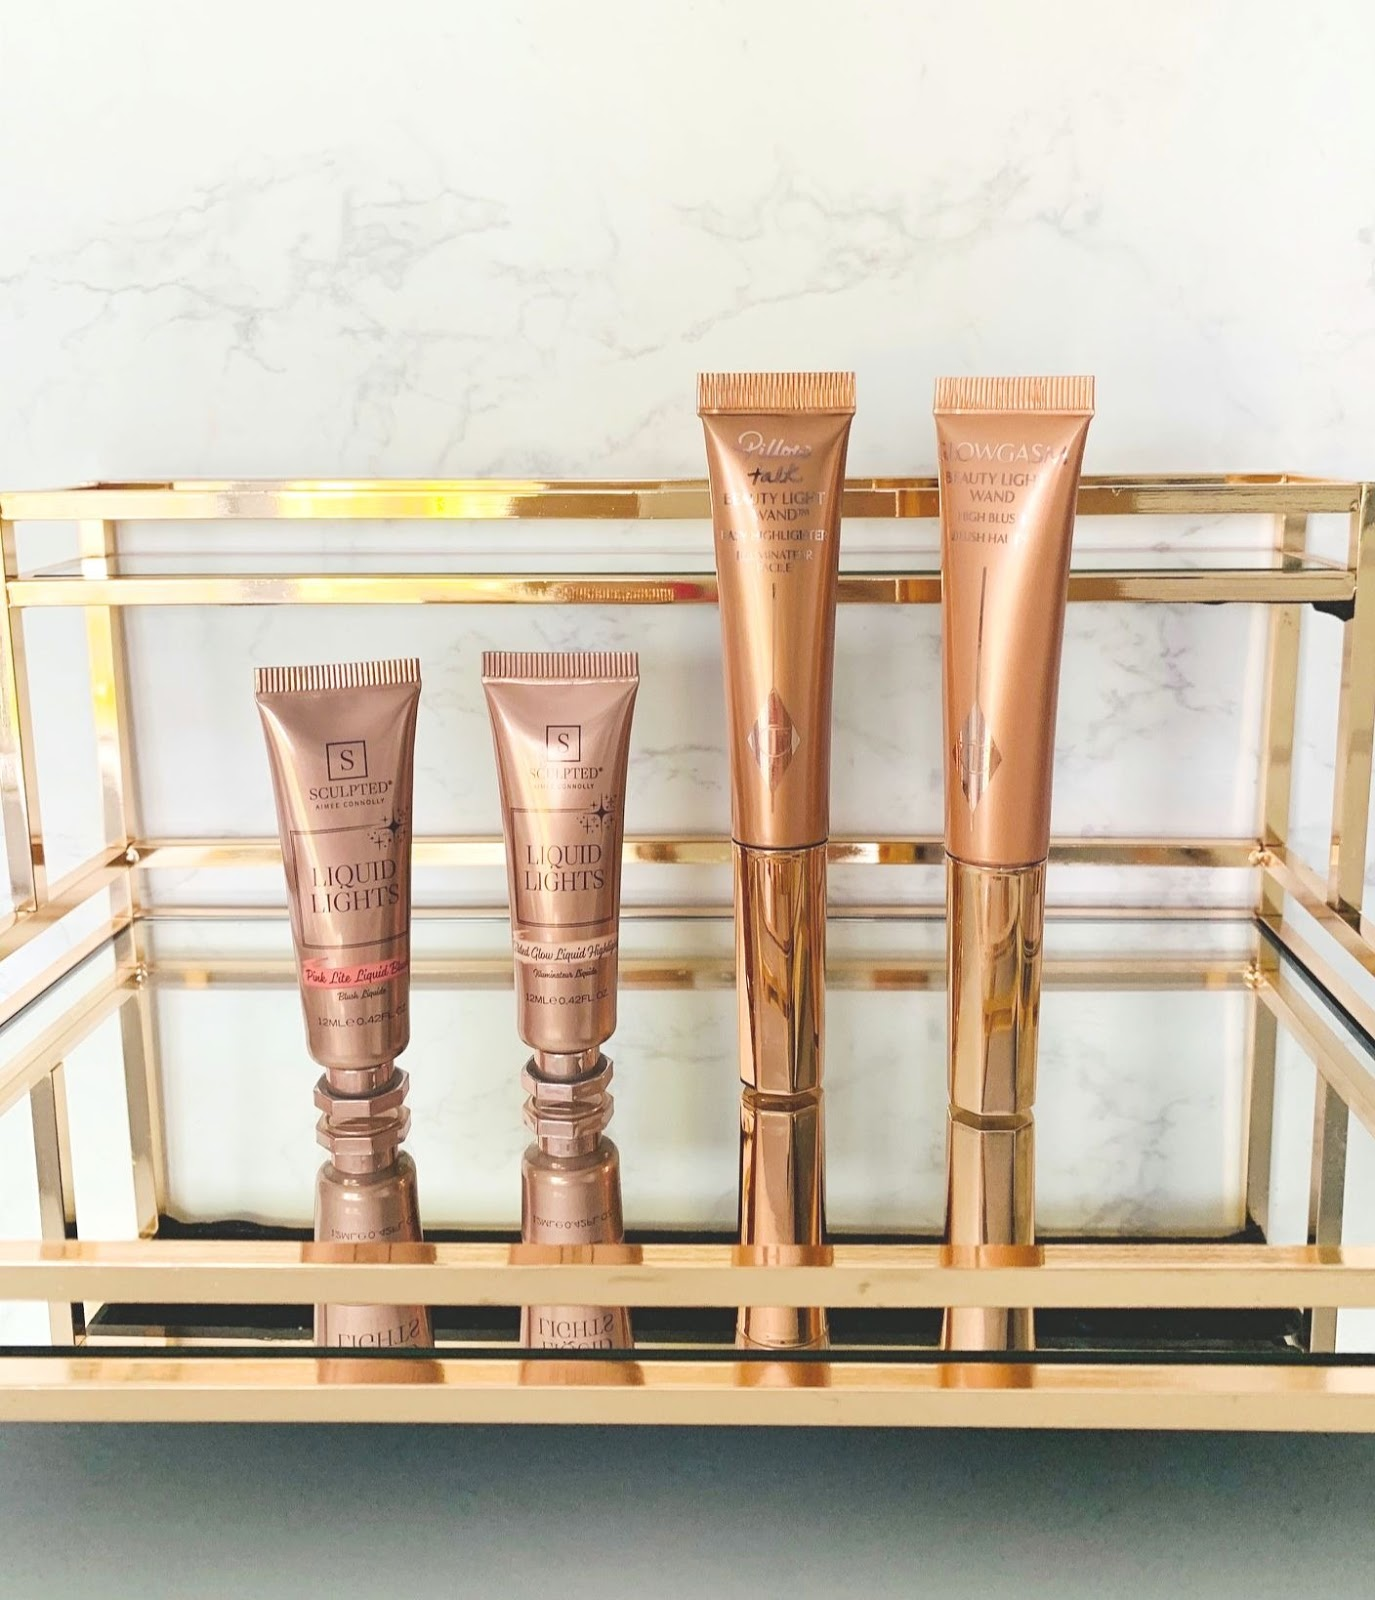 Charlotte Tilbury Beauty Light Wand Dupes, Charlotte Tilbury Beauty Light Wand Dupes, Sculpted by Aimee Liquid Lights